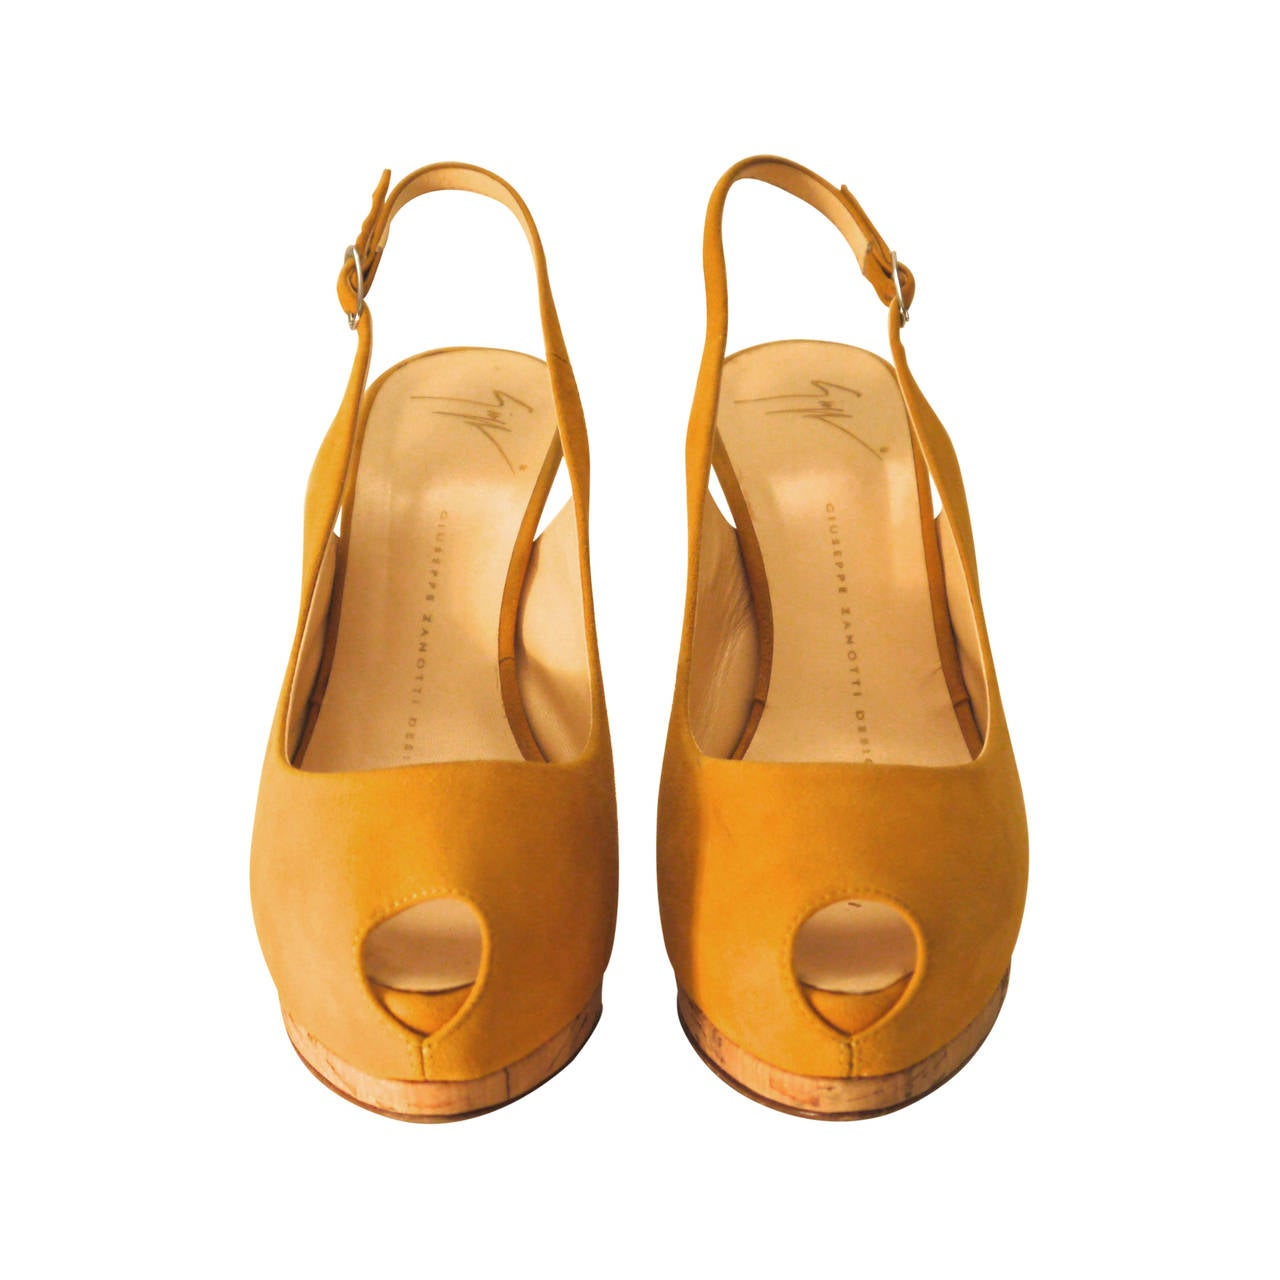 Giuseppe Zanotti Yellow Suede Open Toe Heels with Sling Strap - Size 37 For Sale